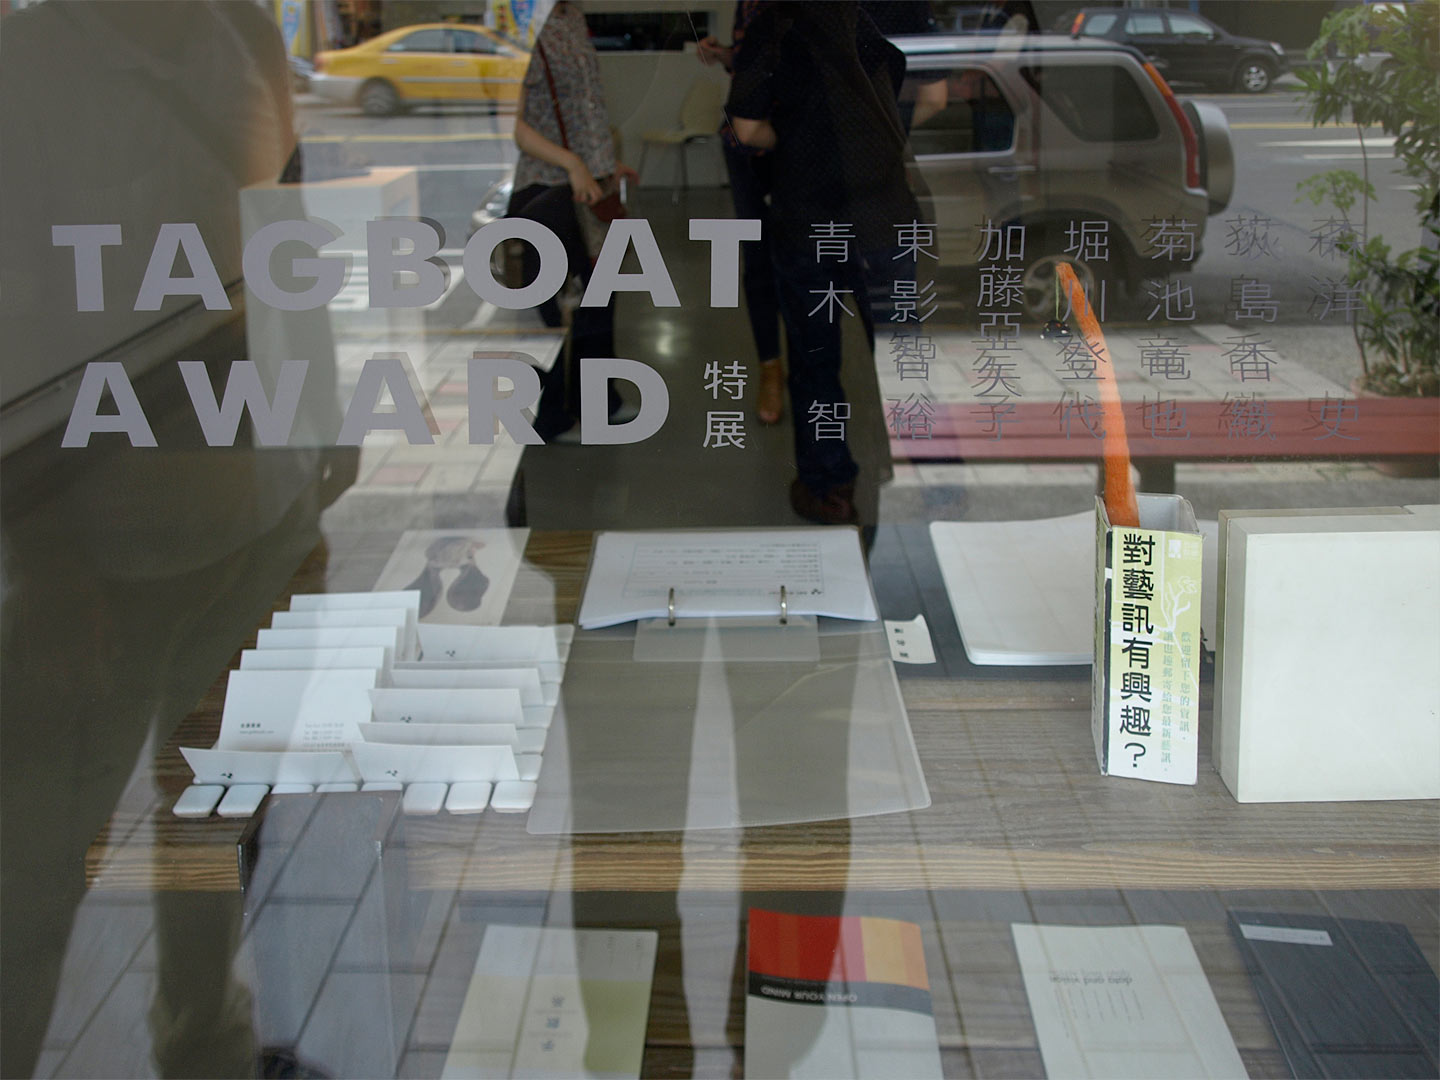 「TAGBOAT AWARD」AKI GALLERY 2012年(台湾 台北市)